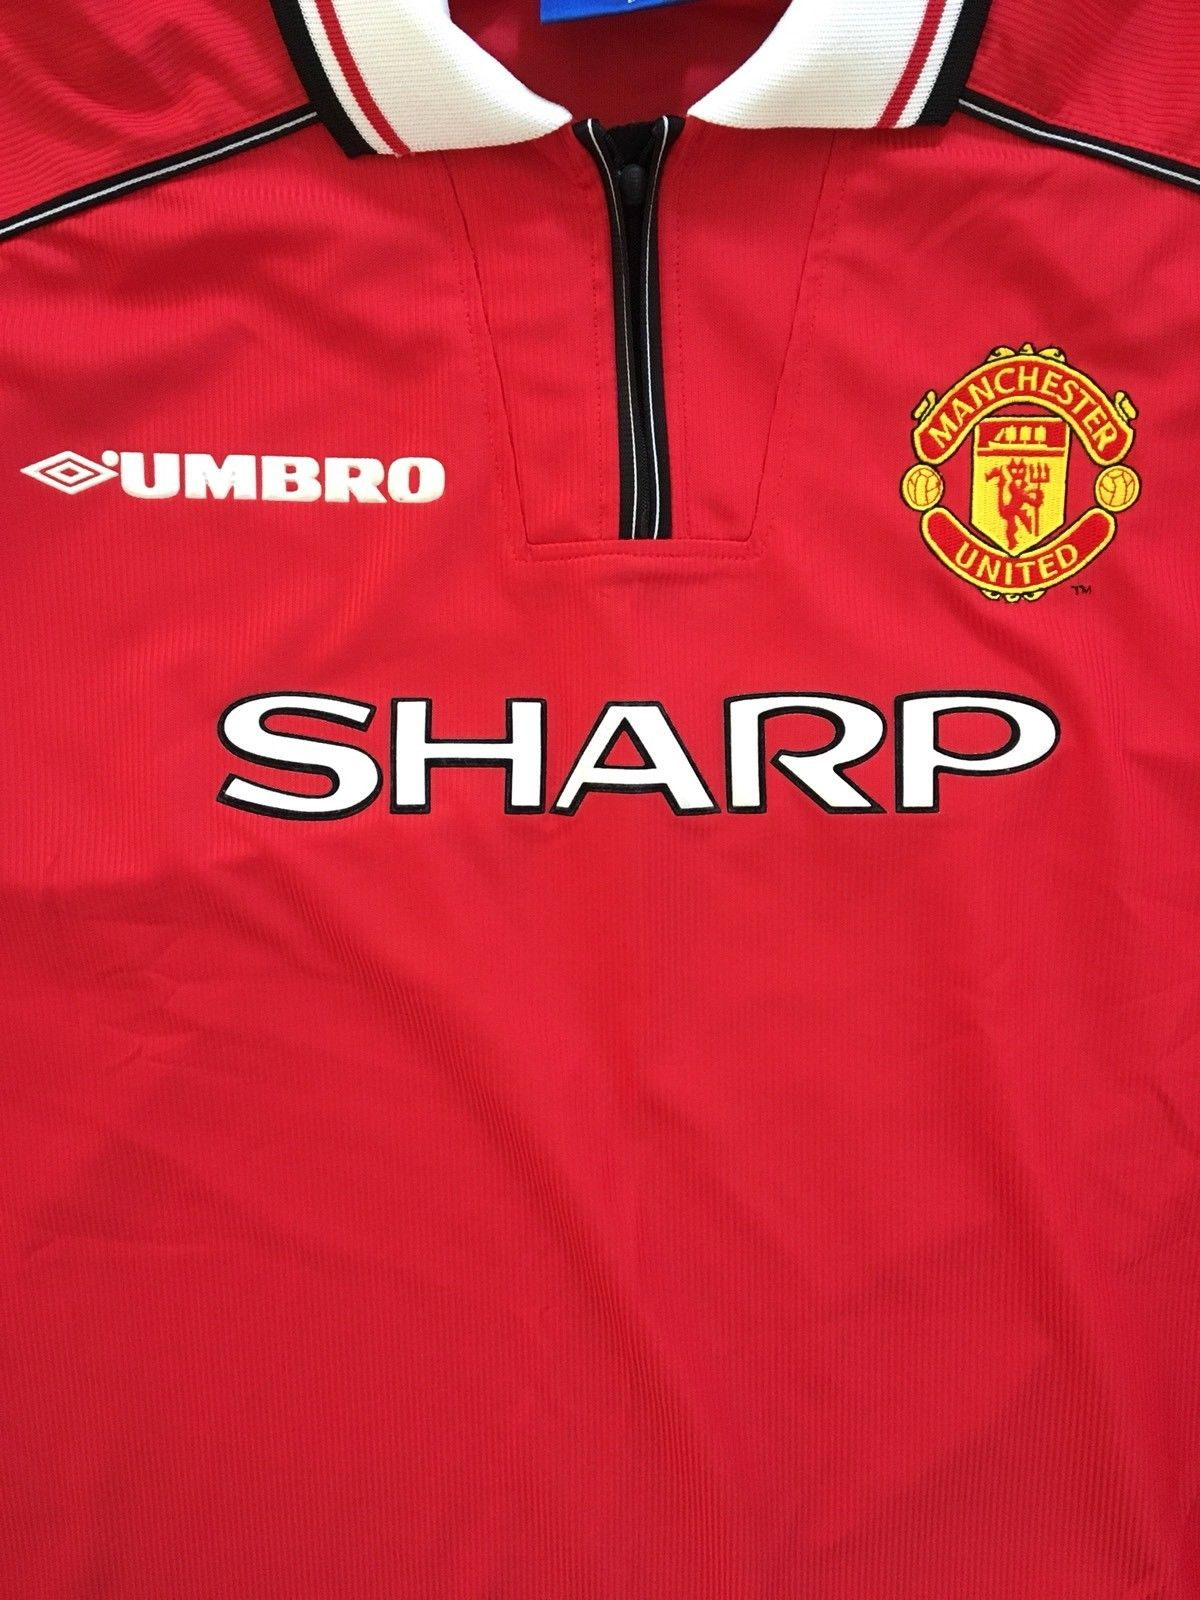 1998/00 Manchester United Home Shirt (L) 9.5/10